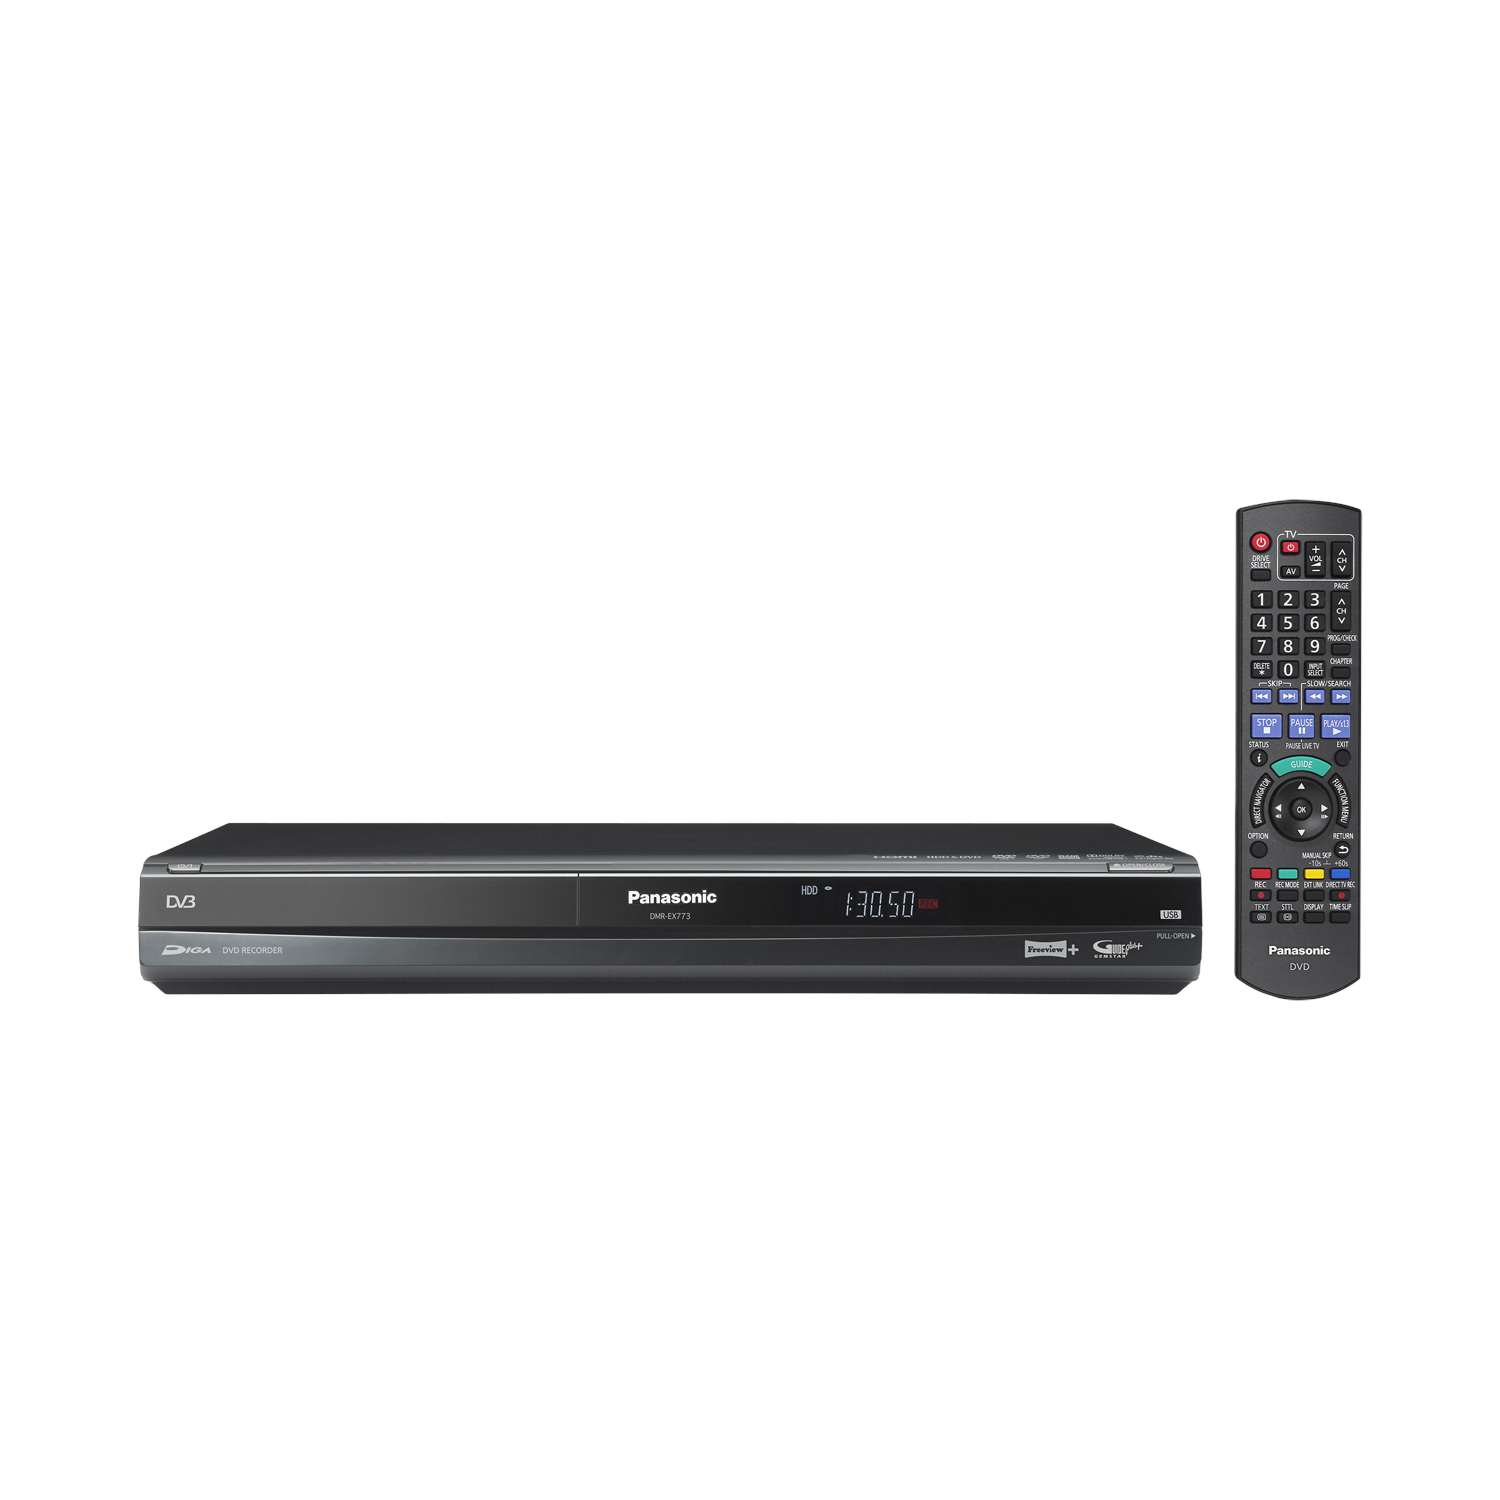 Panasonic DMR-EX773 DVD Recorder. DVD/HDD Recorder with a 160GB HDD & Freeview. Enlarged Preview